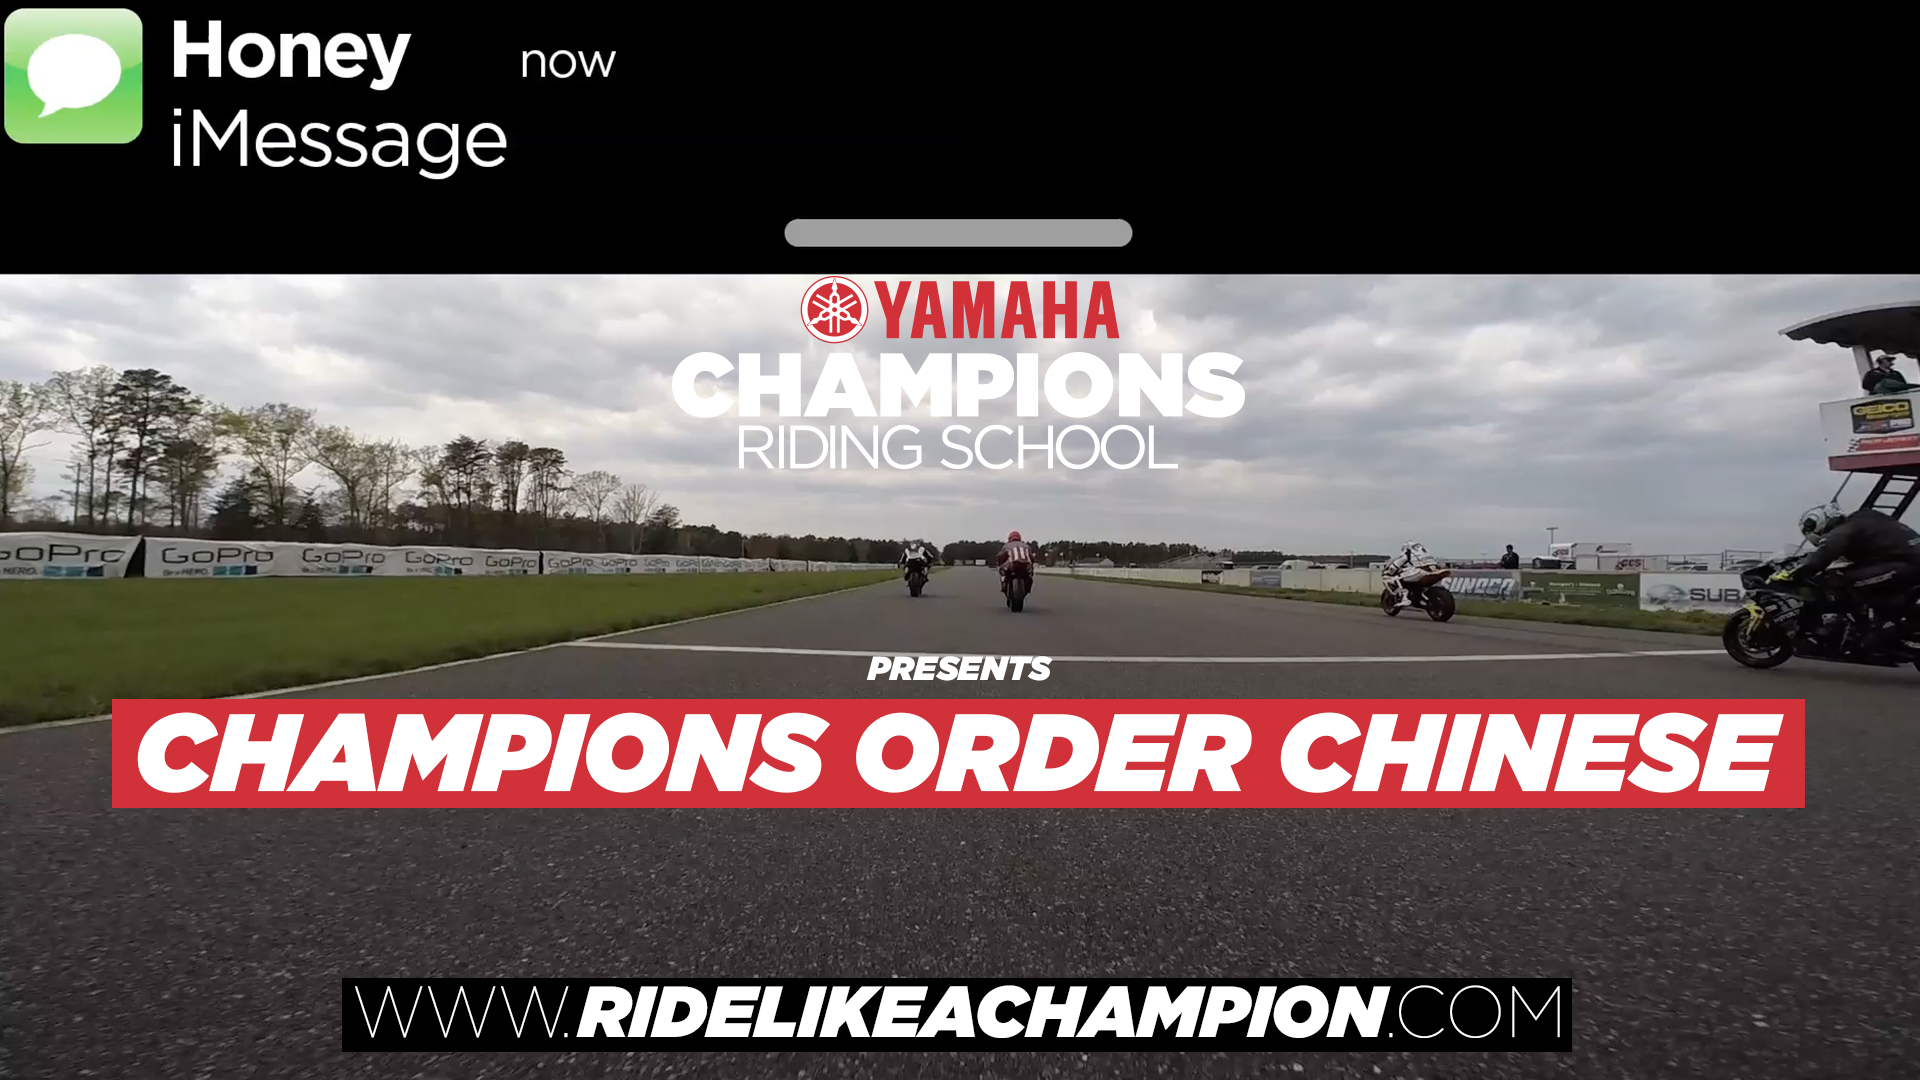 Champions order Chinese!